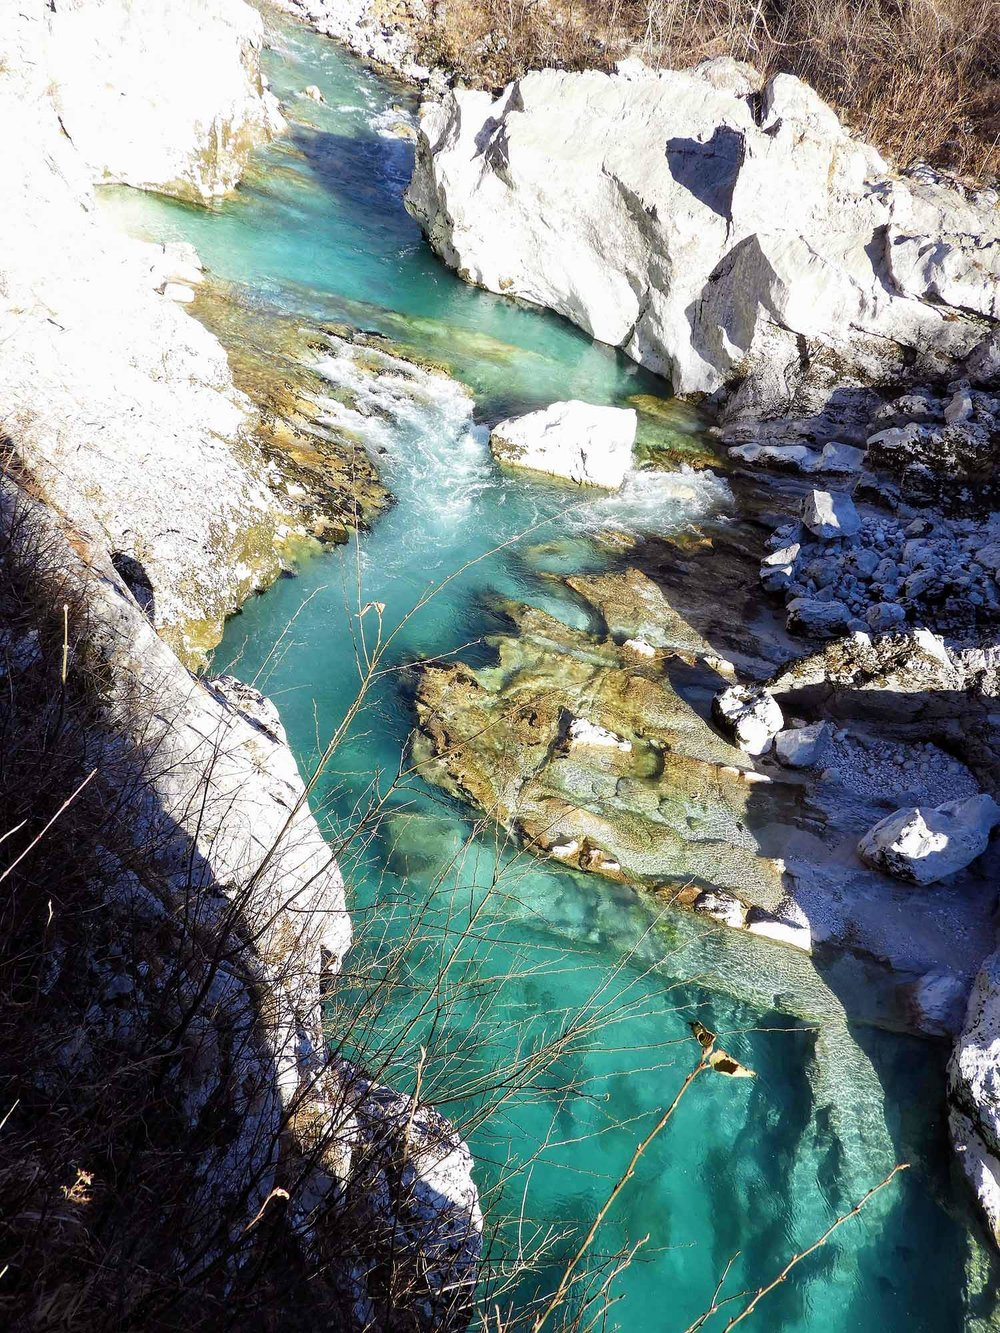 slovenia-triglav-national-park-isonsa-gorge-beautiful-water-turqoise.jpg